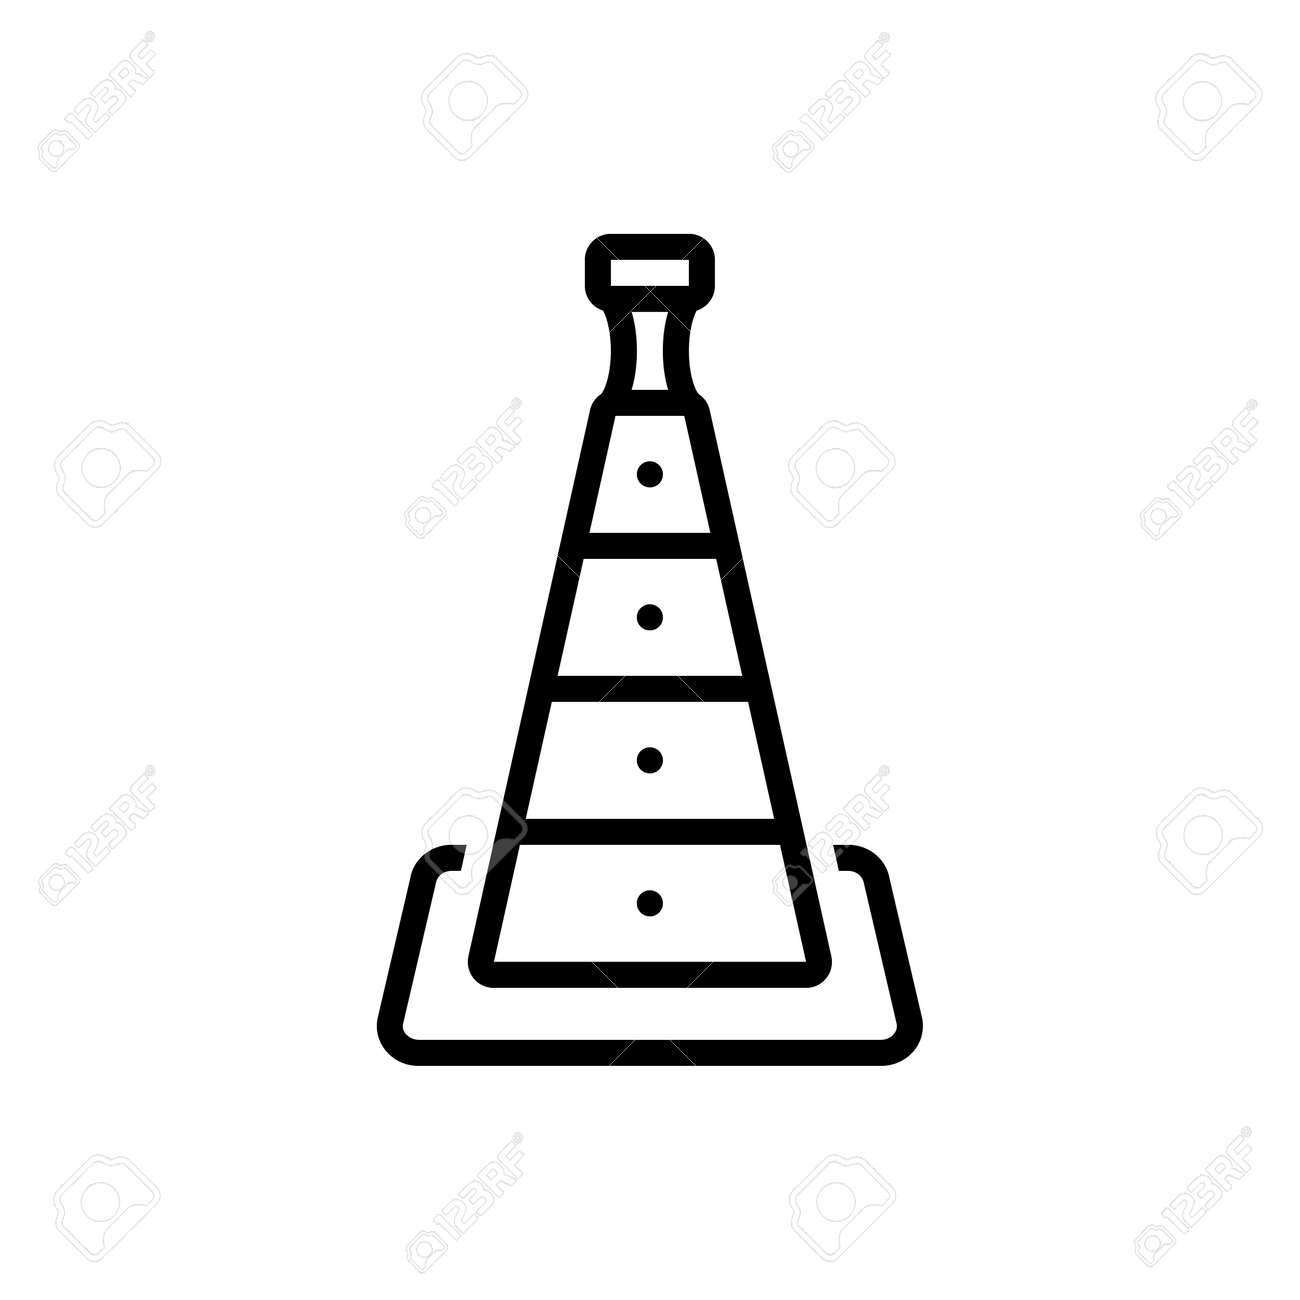 Icon for cone,barrier - 172206622